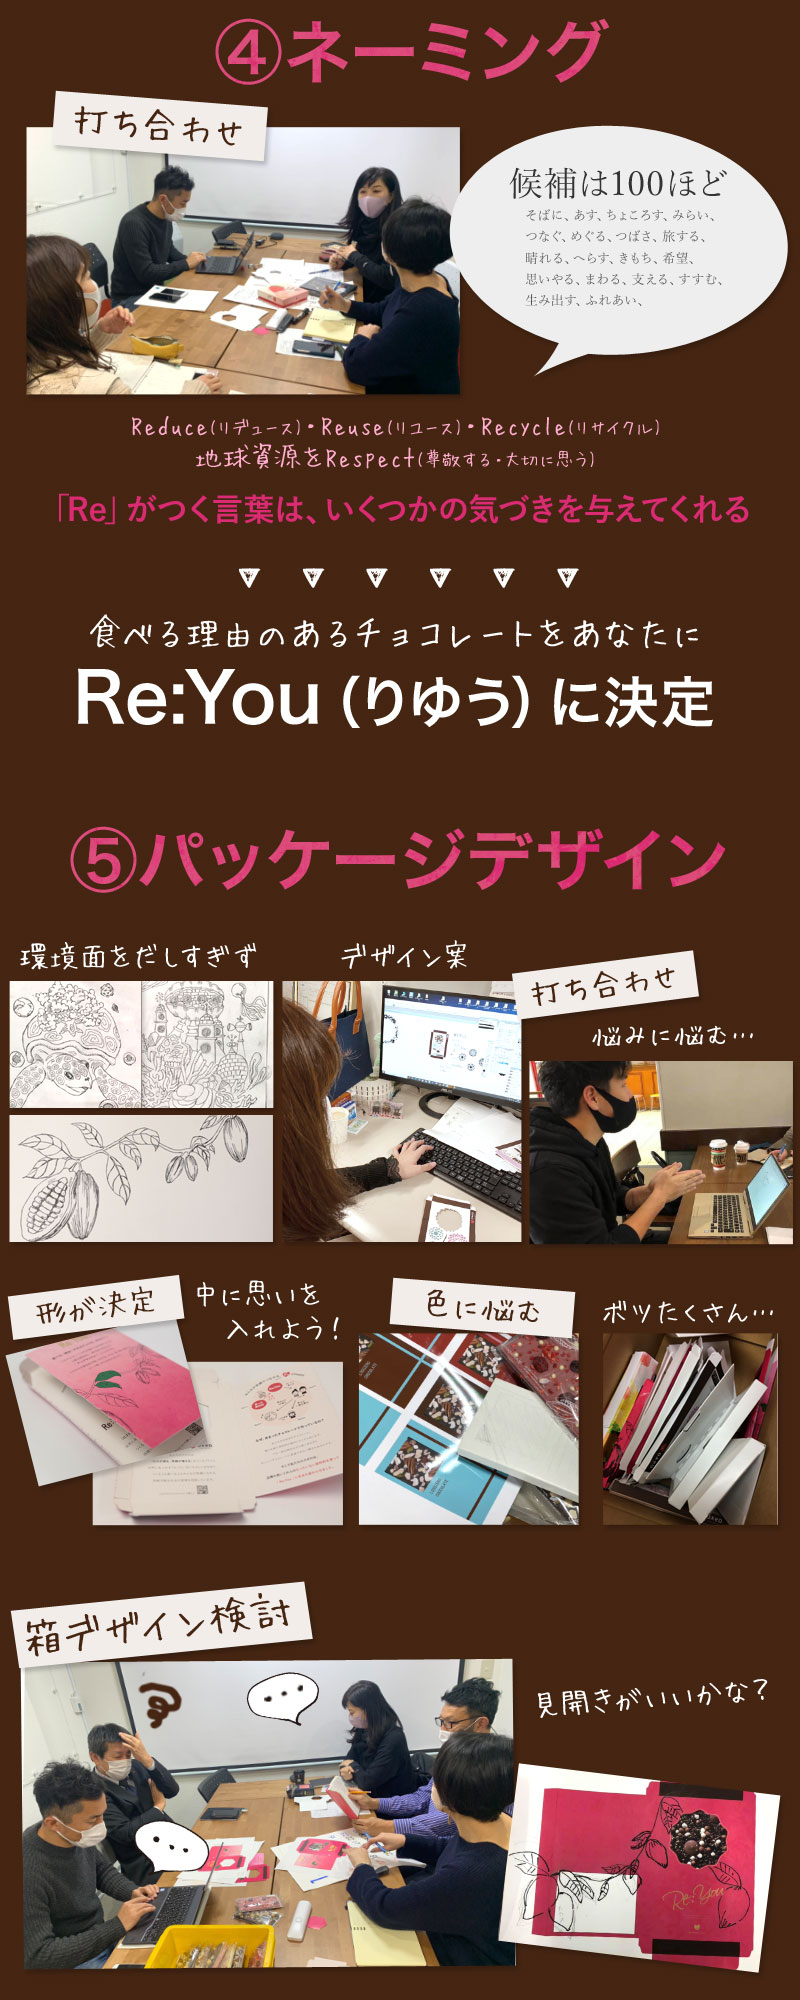 Re:You